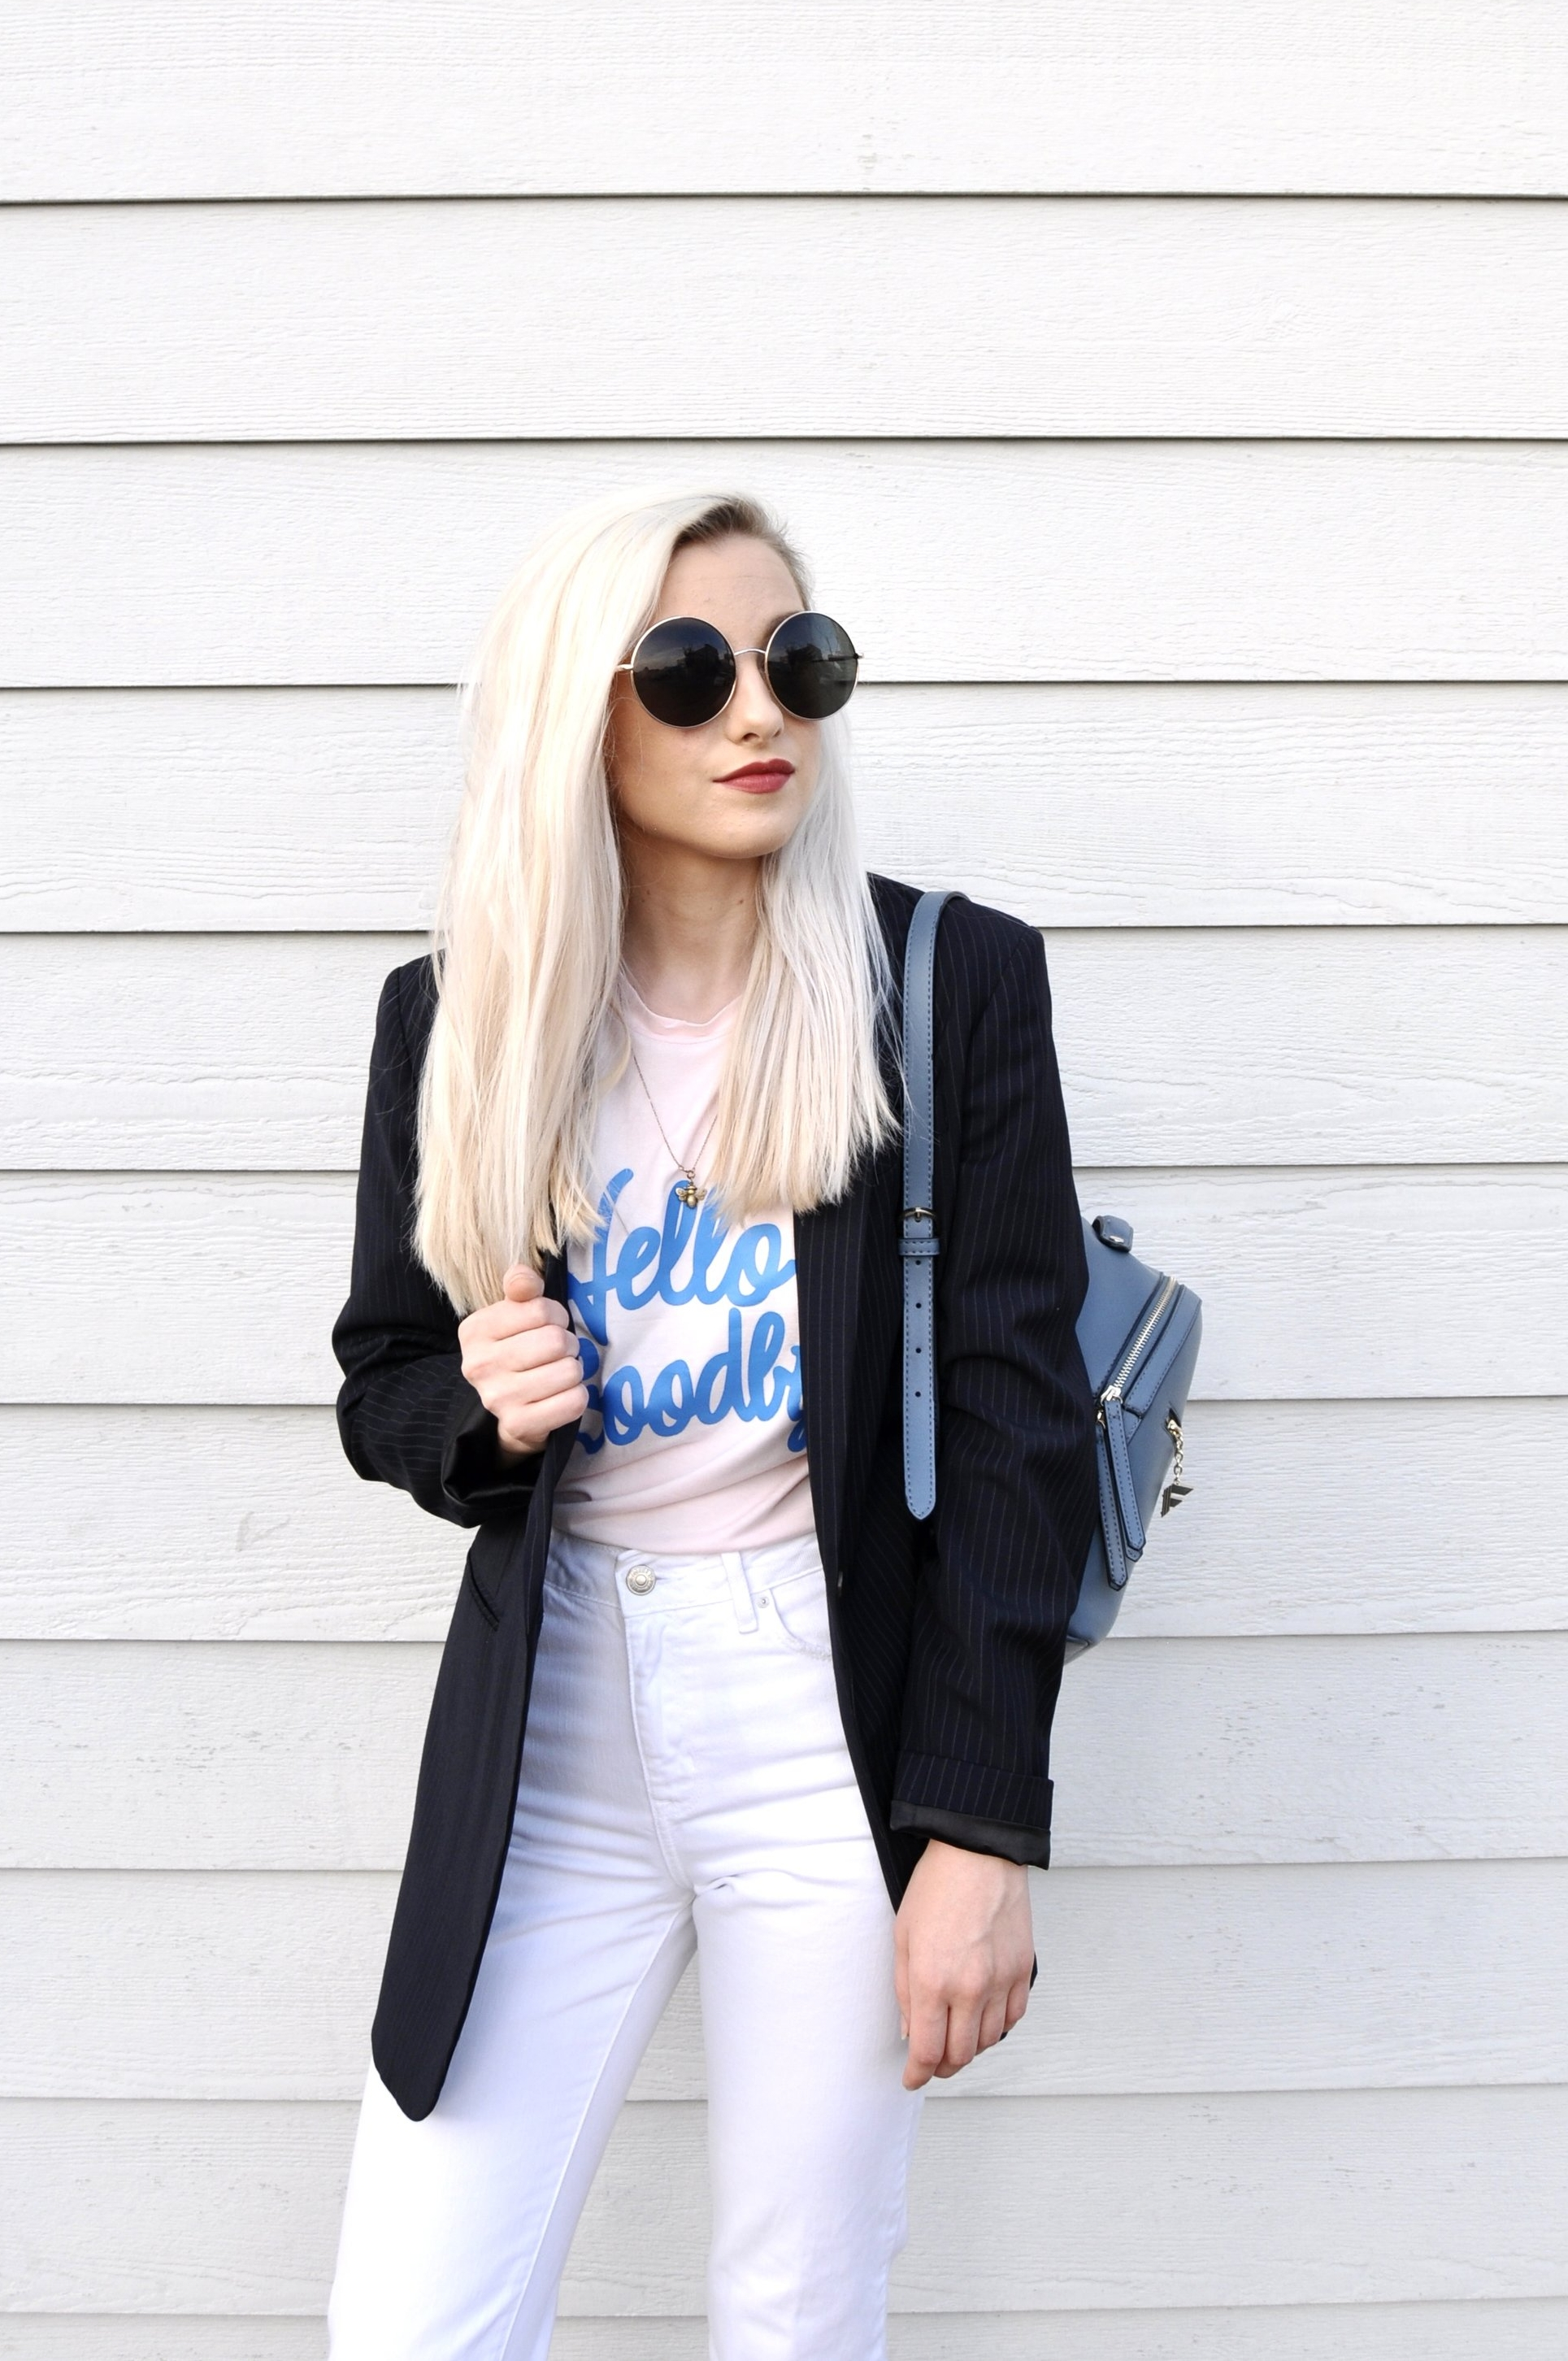 Sunglasses: Forever21, Tshirt: Forever21, Blazer: Baukjen, Jeans: Urban Outfitters, Shoes: Ego Shoes, Backpack: Fiorelli